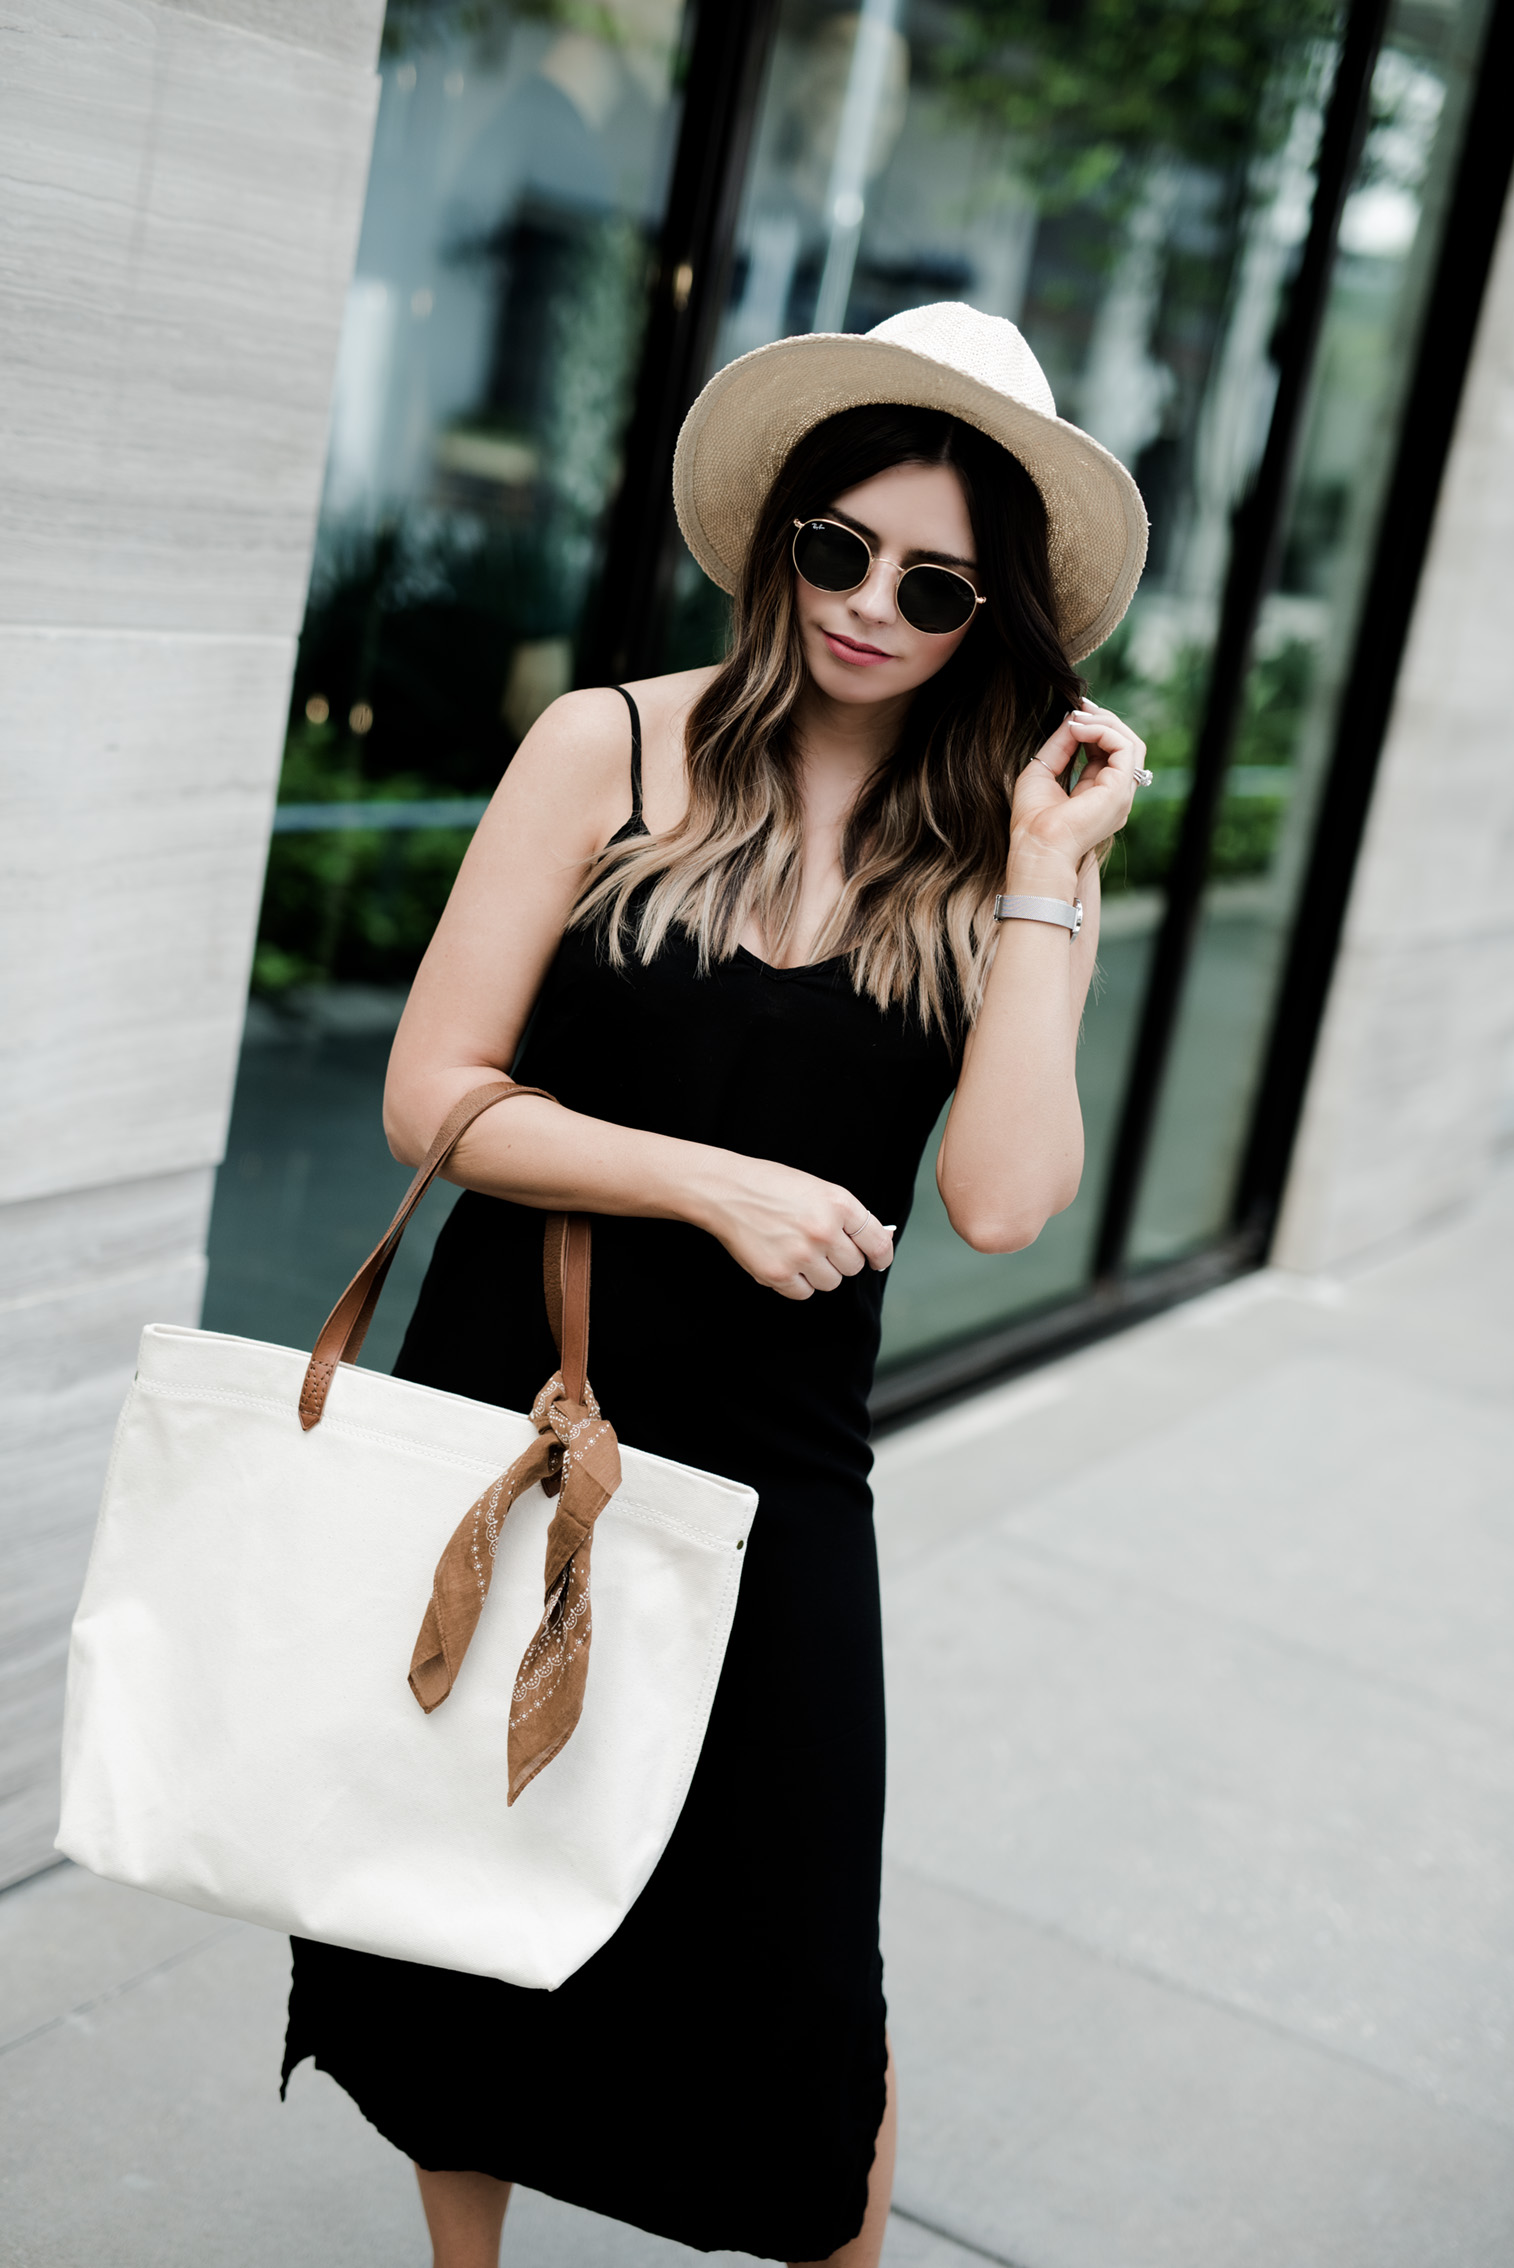 Tiffany Jais Houston fashion and lifestyle blogger | Slip dress obsessed | Slip dress street style | Madewell canvas tote, fedora hat outfit, brown slides, slides shoes